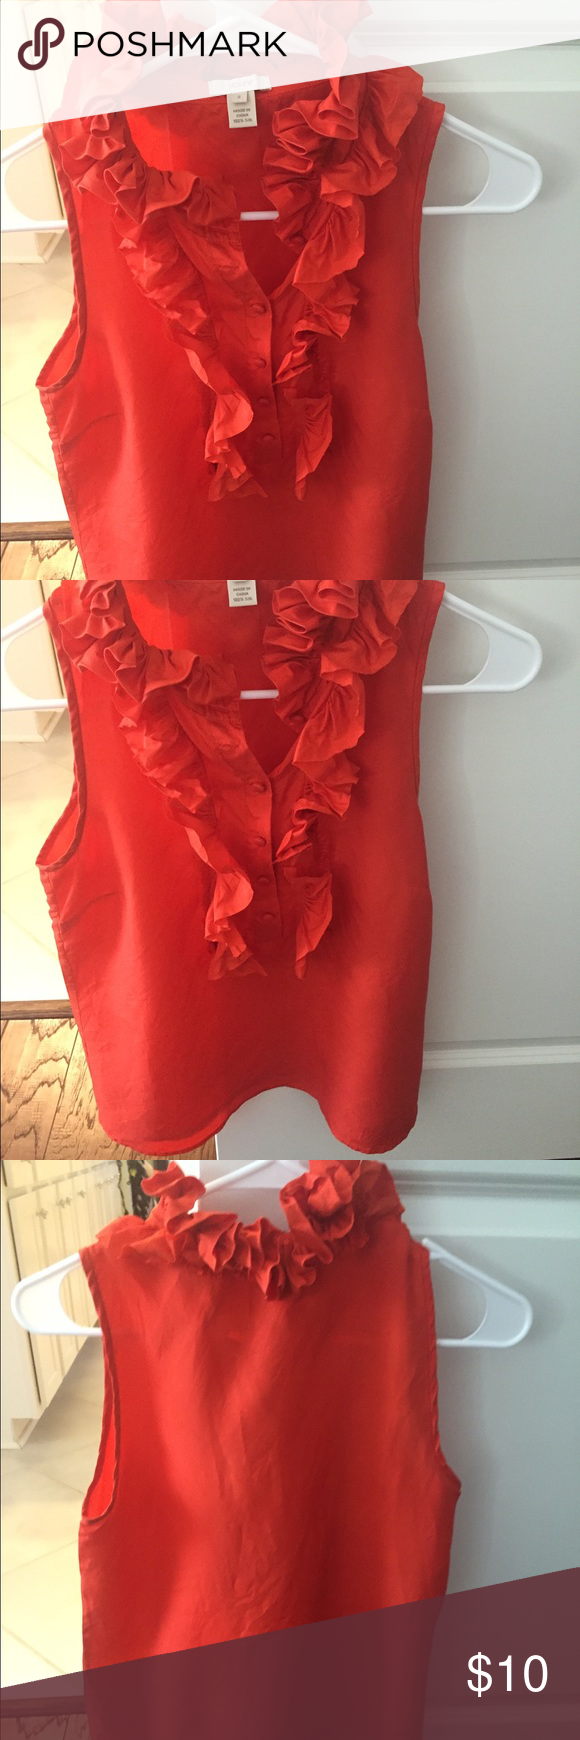 Jcrew blouse Orange silk Jcrew blouse with ruffled color! So cute! There is a small water stain on back at top, but you can barely see it. Should come out when dry cleaned! J. Crew Tops Blouses